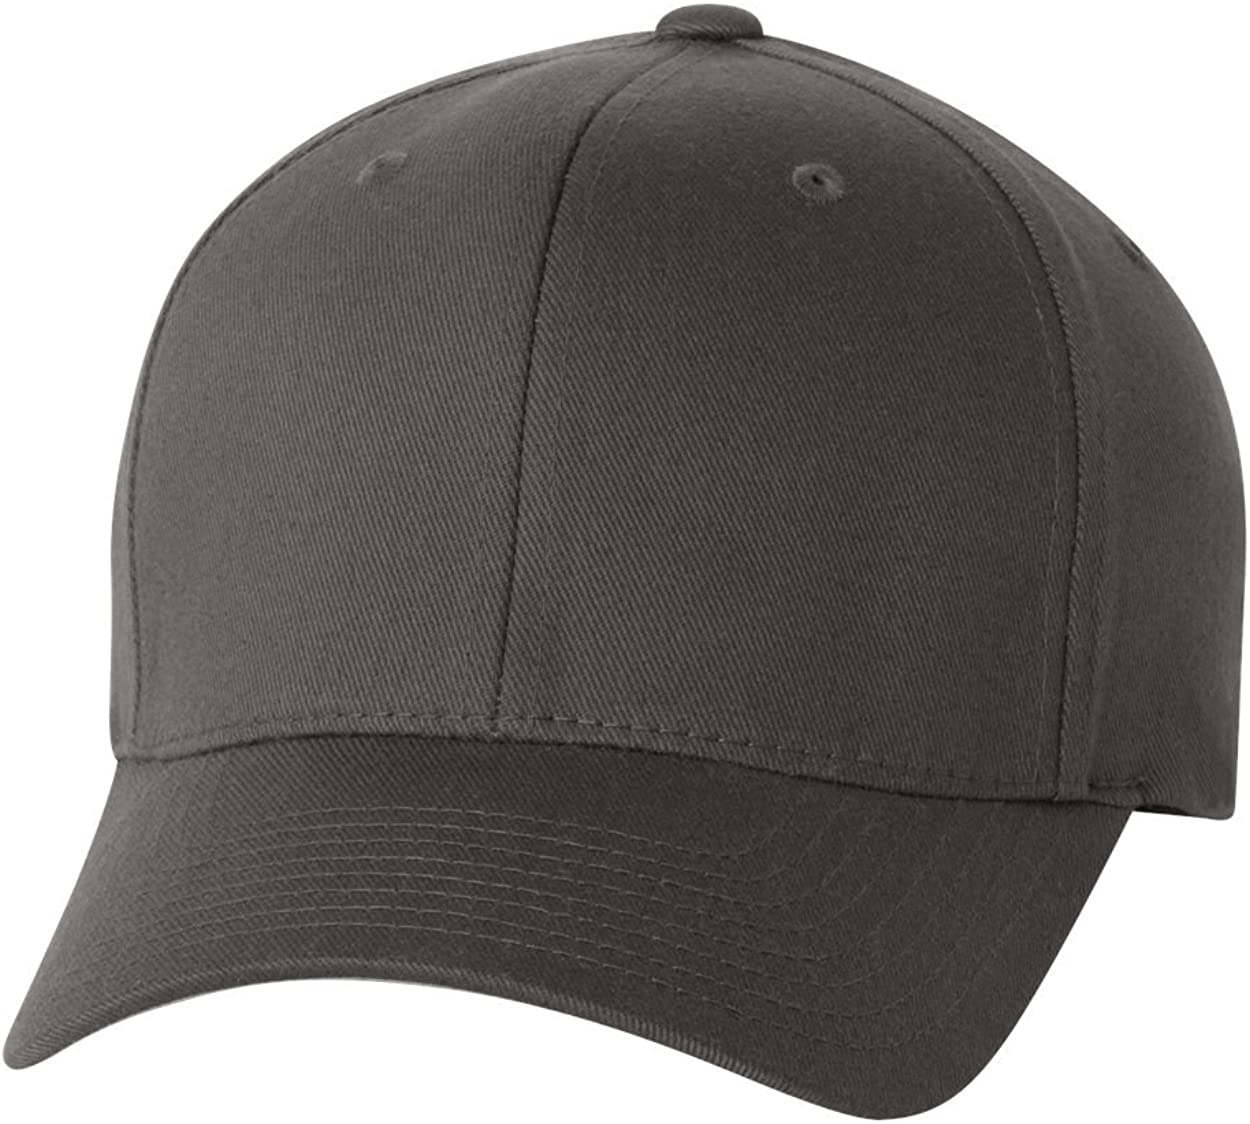 Flexfit 6277C Cotton Twill Blend Cap